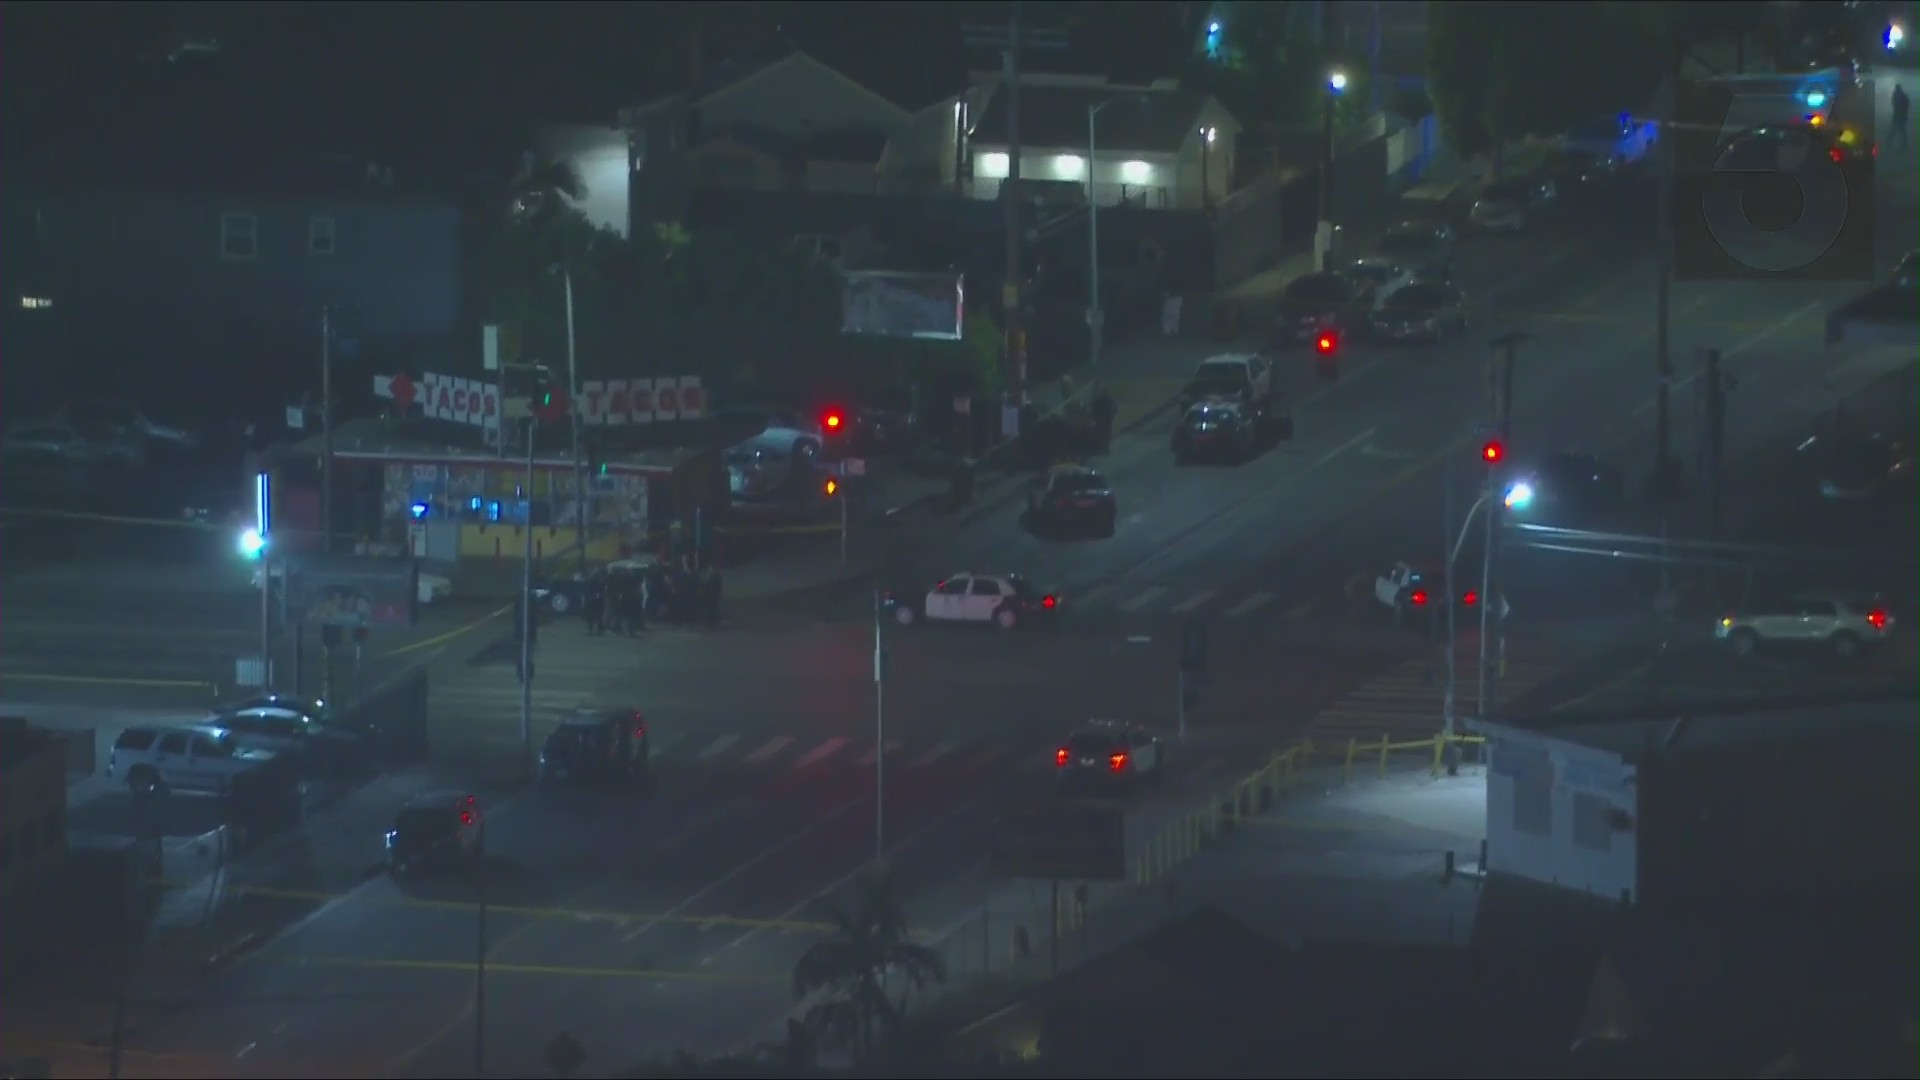 Man Killed 2 Women Injured In Green Meadows Shooting That Lapd Believes To Be Gang Related Ktla